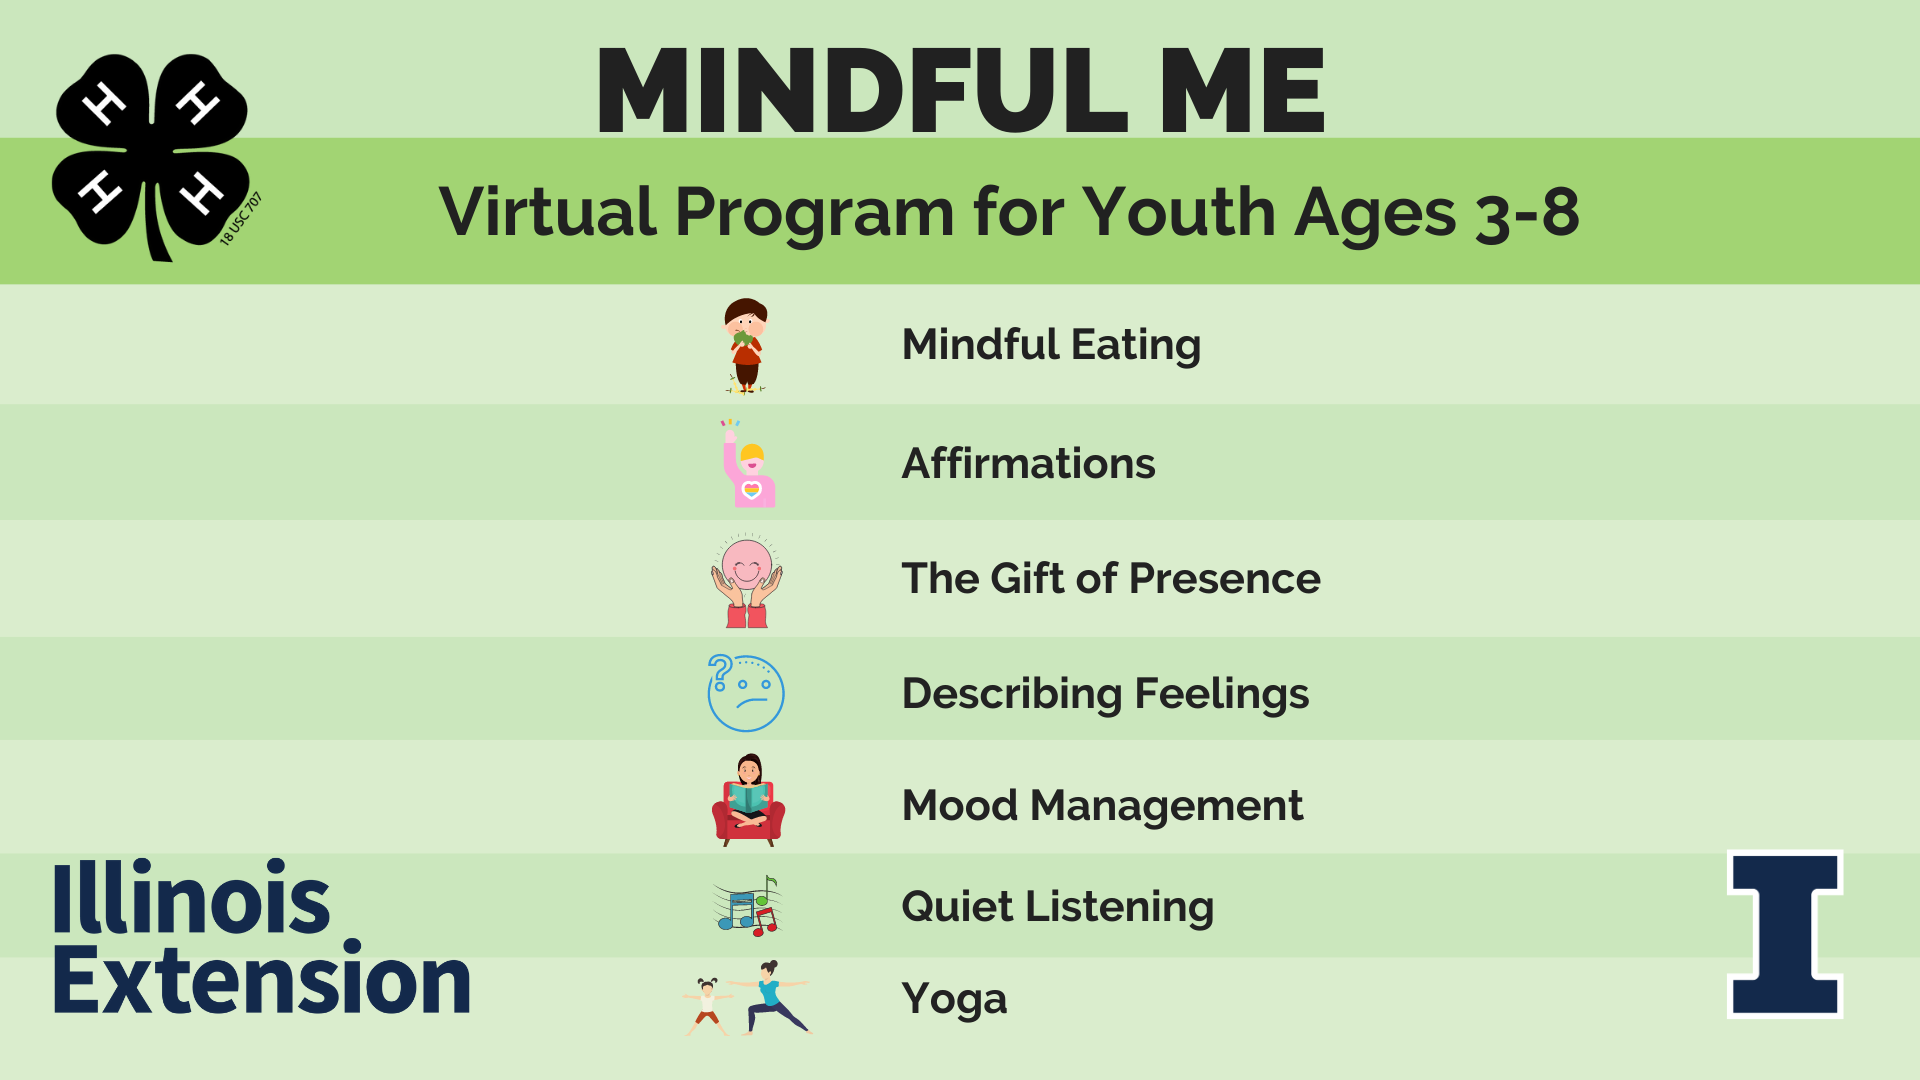 Mindful Me Virtual Program for Youth Ages 3-8